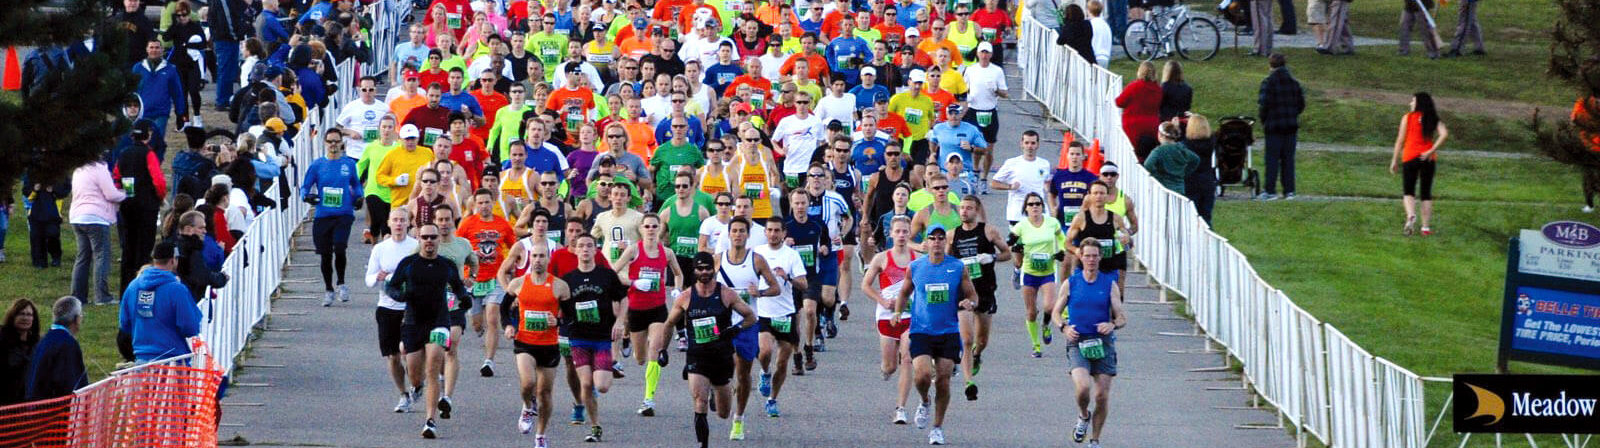 Detroit Free Press/Talmer Bank Marathon and the Brooksie Way